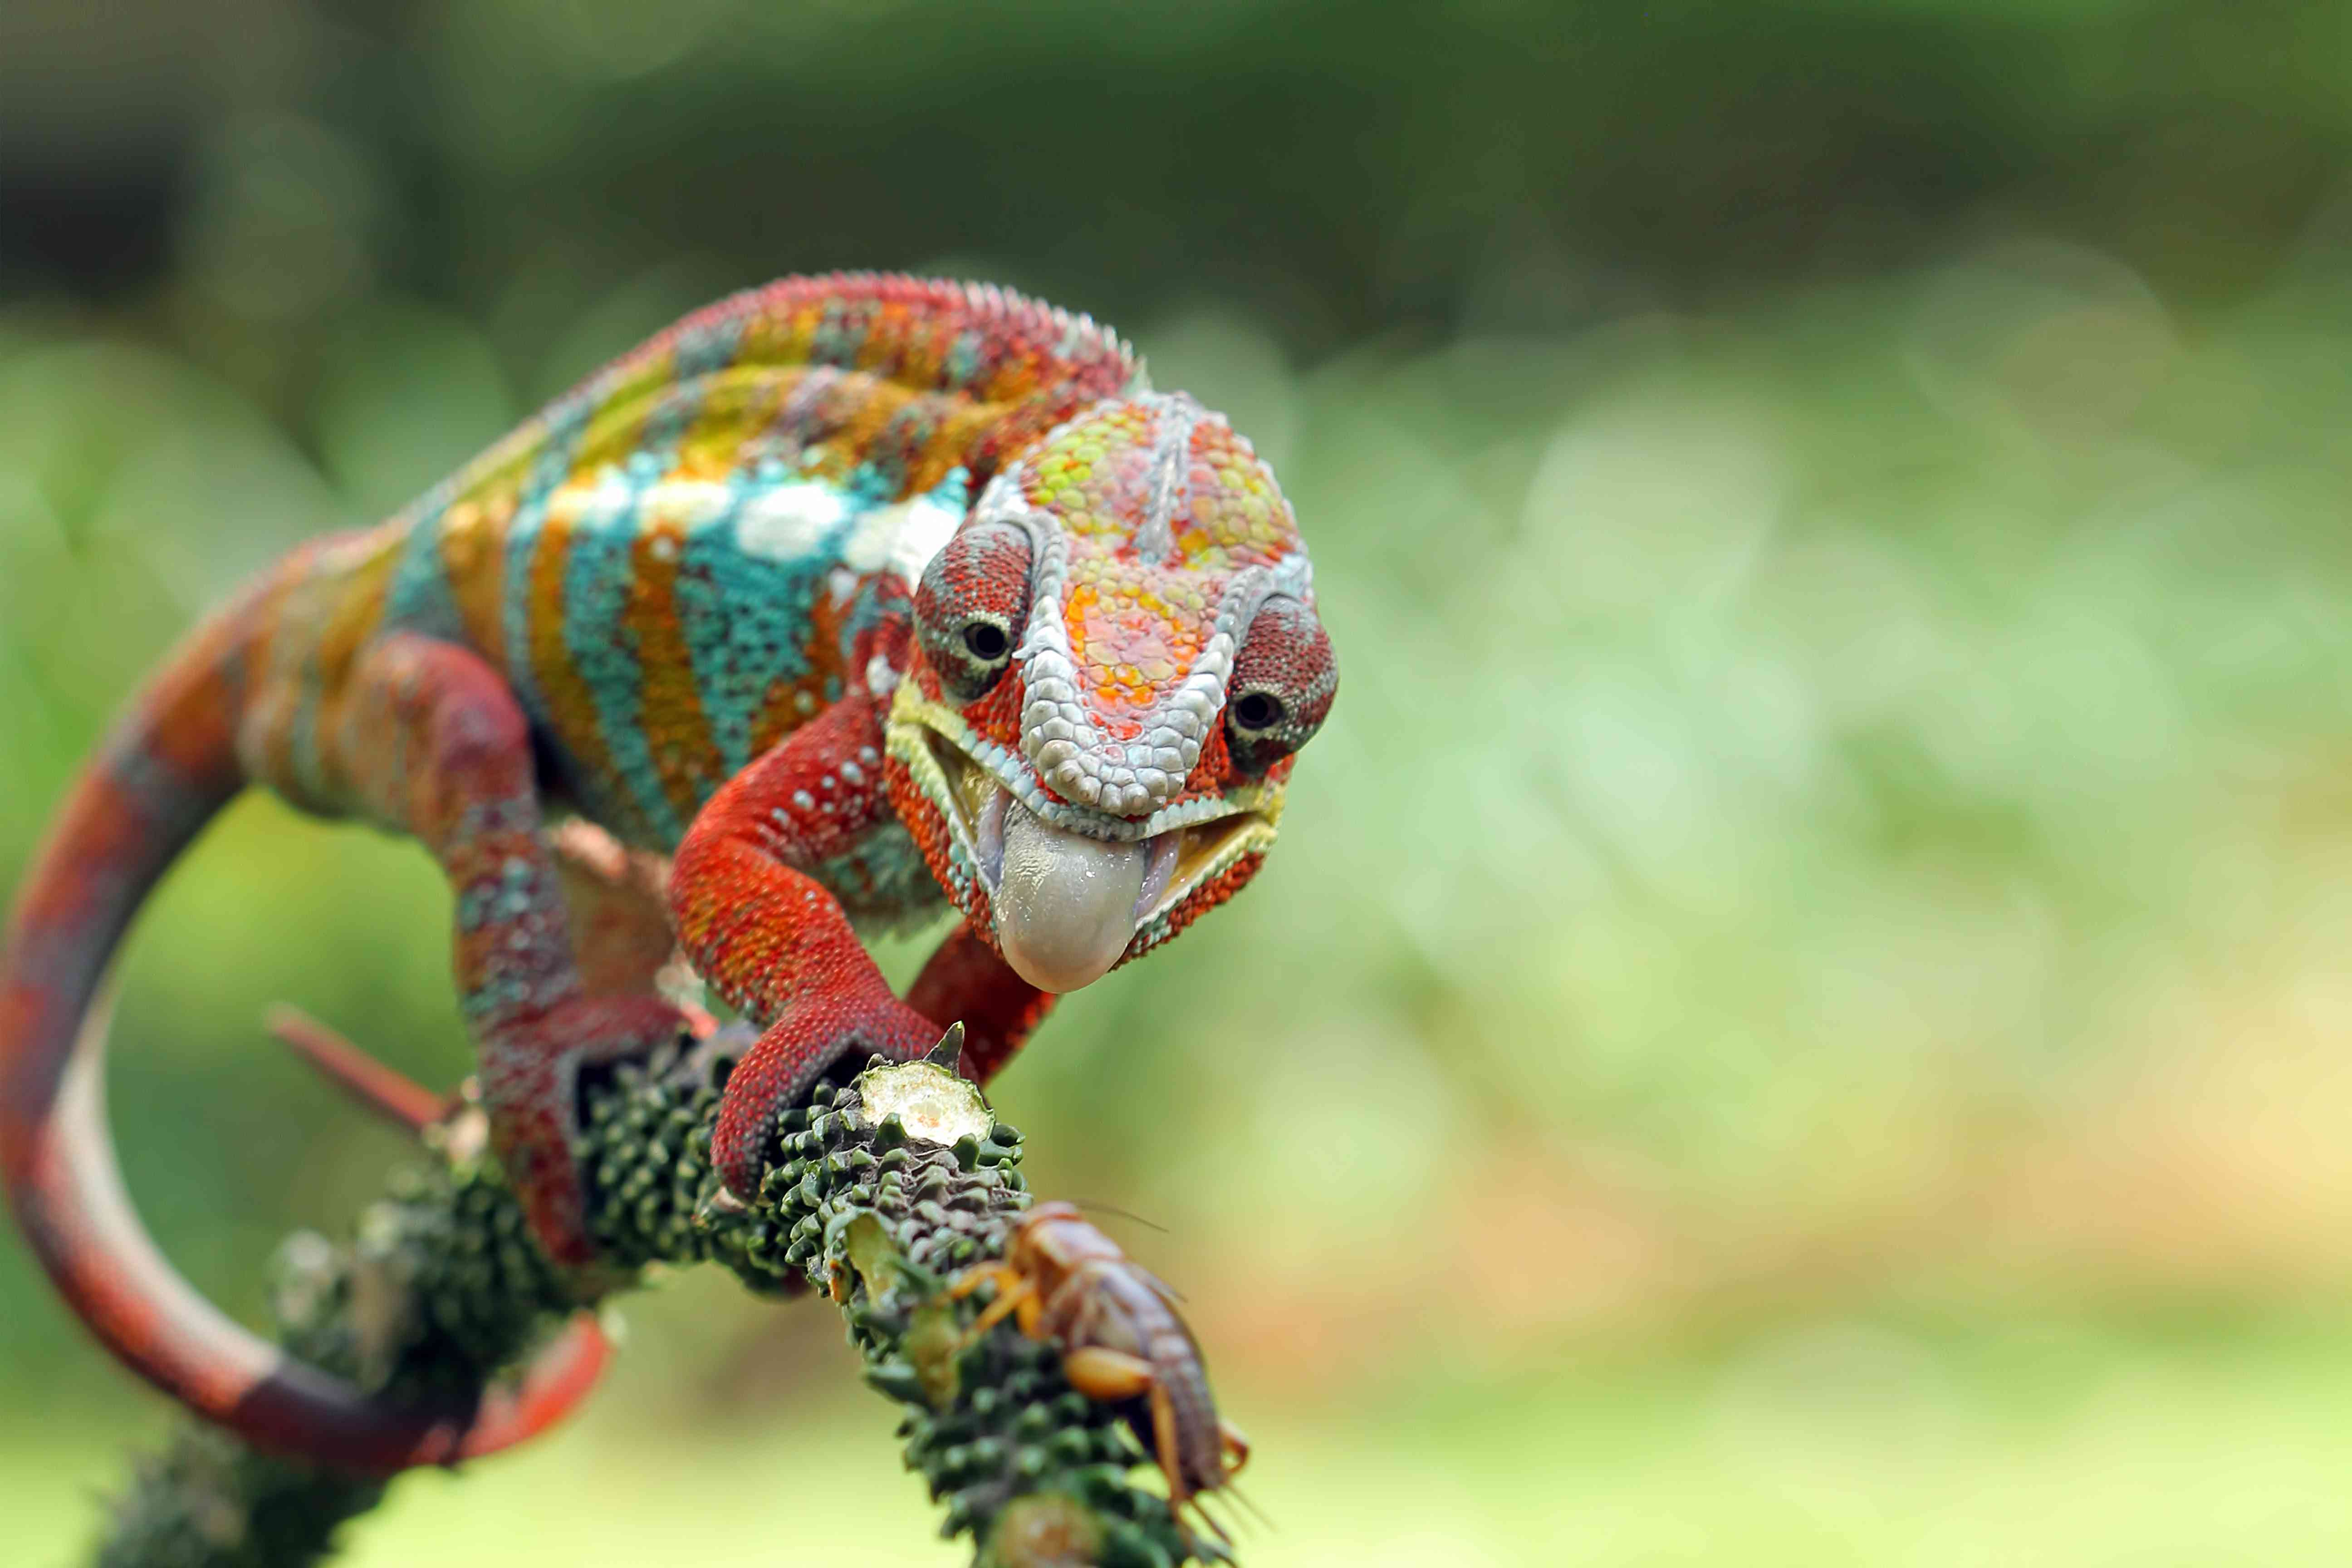 Colorful panther chameleon with tongue out on branch